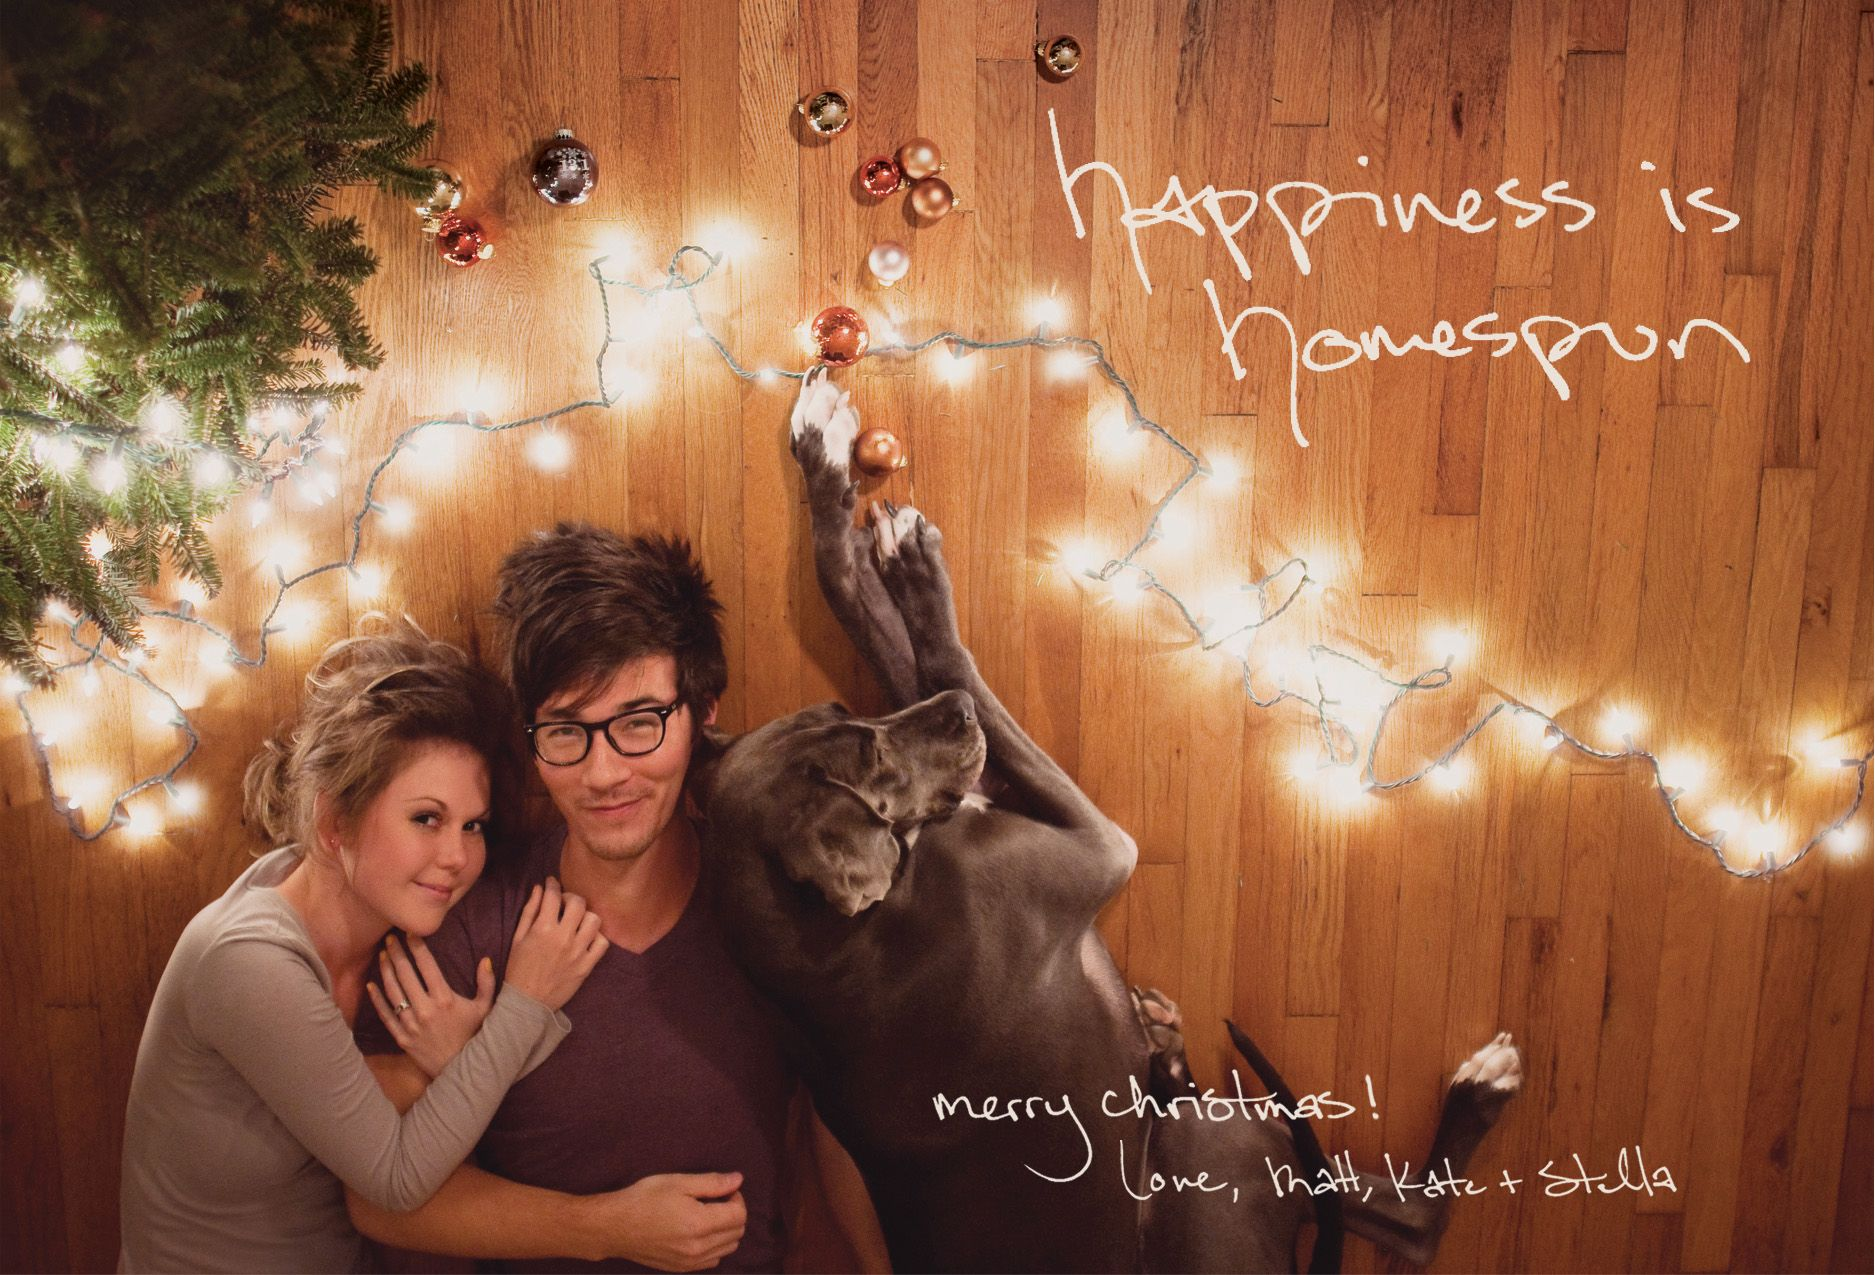 Family Poses for Christmas Cards - Bing Images